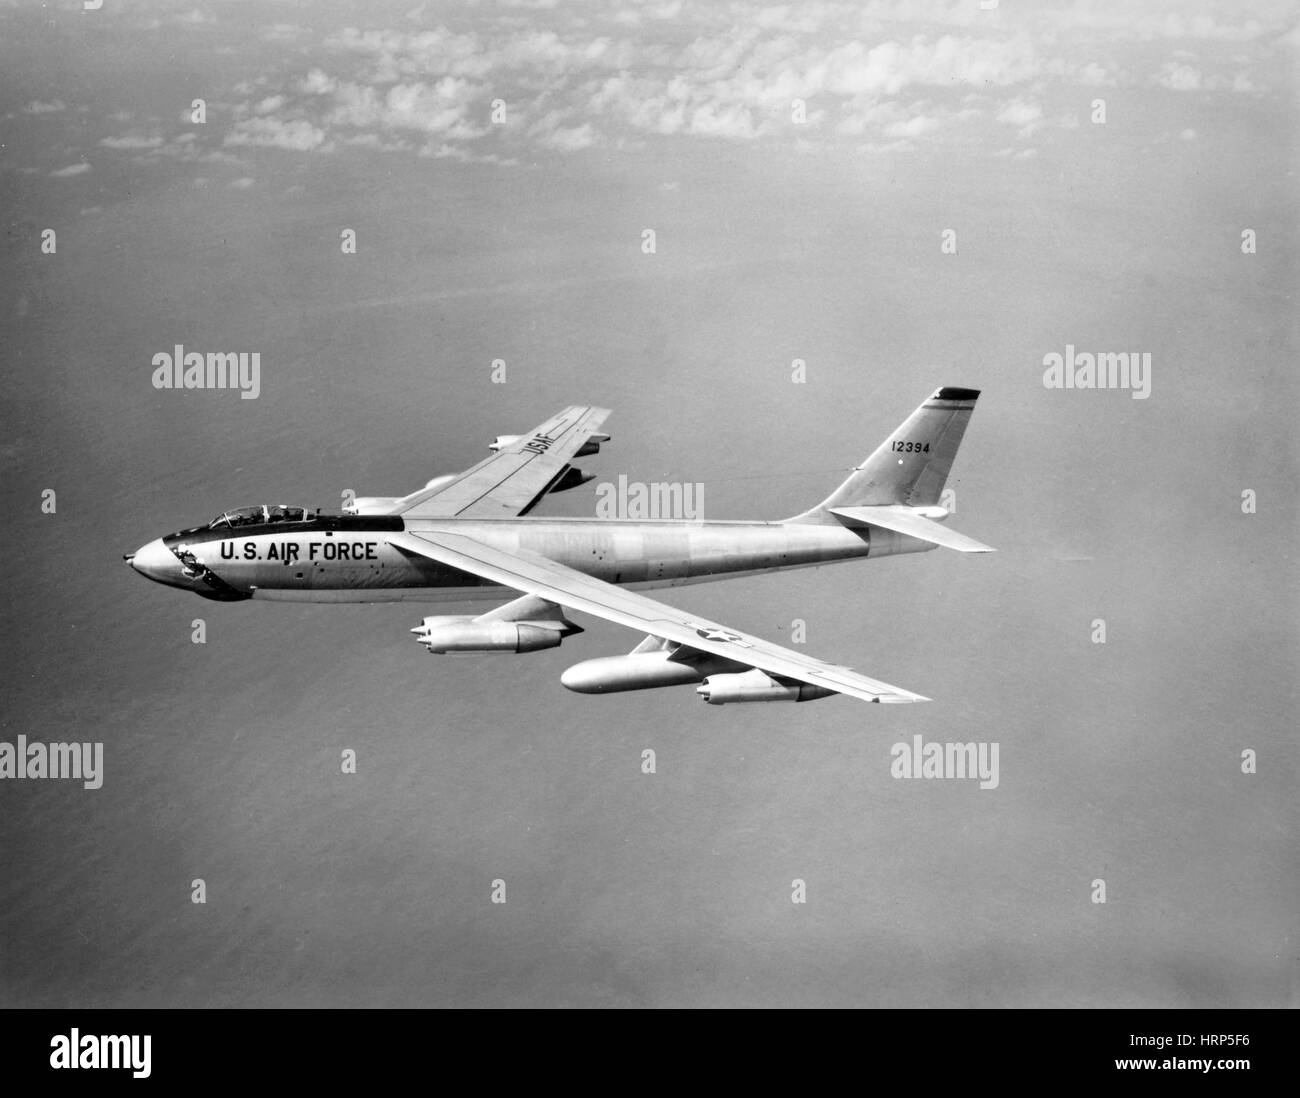 Boeing B-47 Stratojet, Wing-Swept Bomber, 1956 Stock Photo